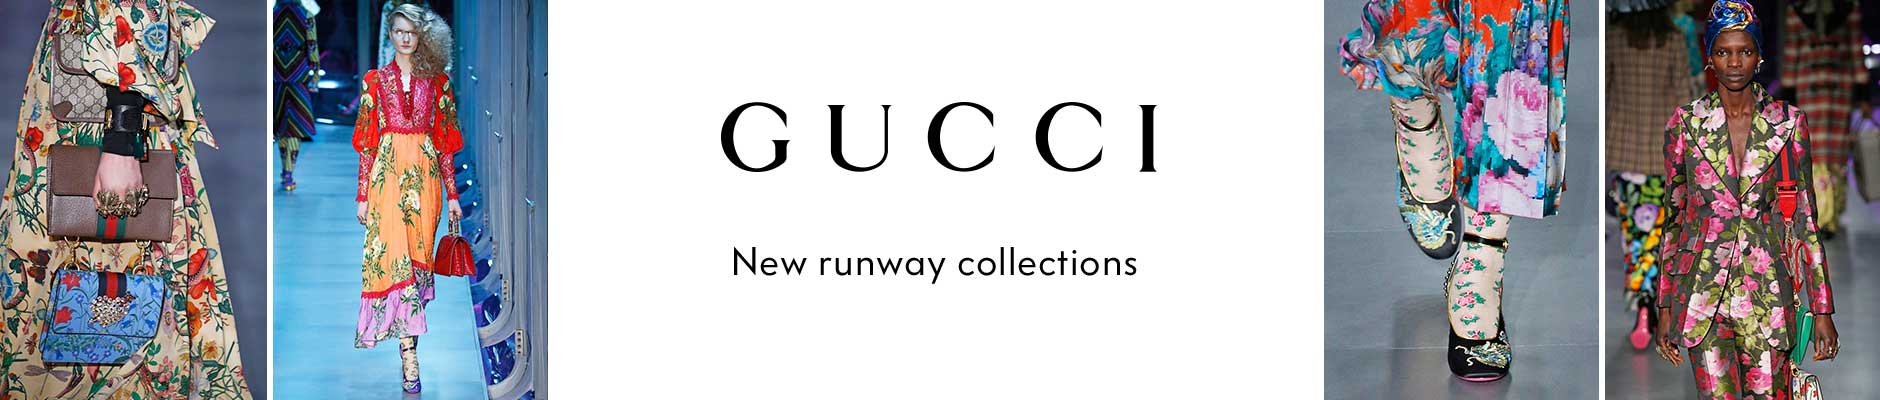 Gucci - New runway collections